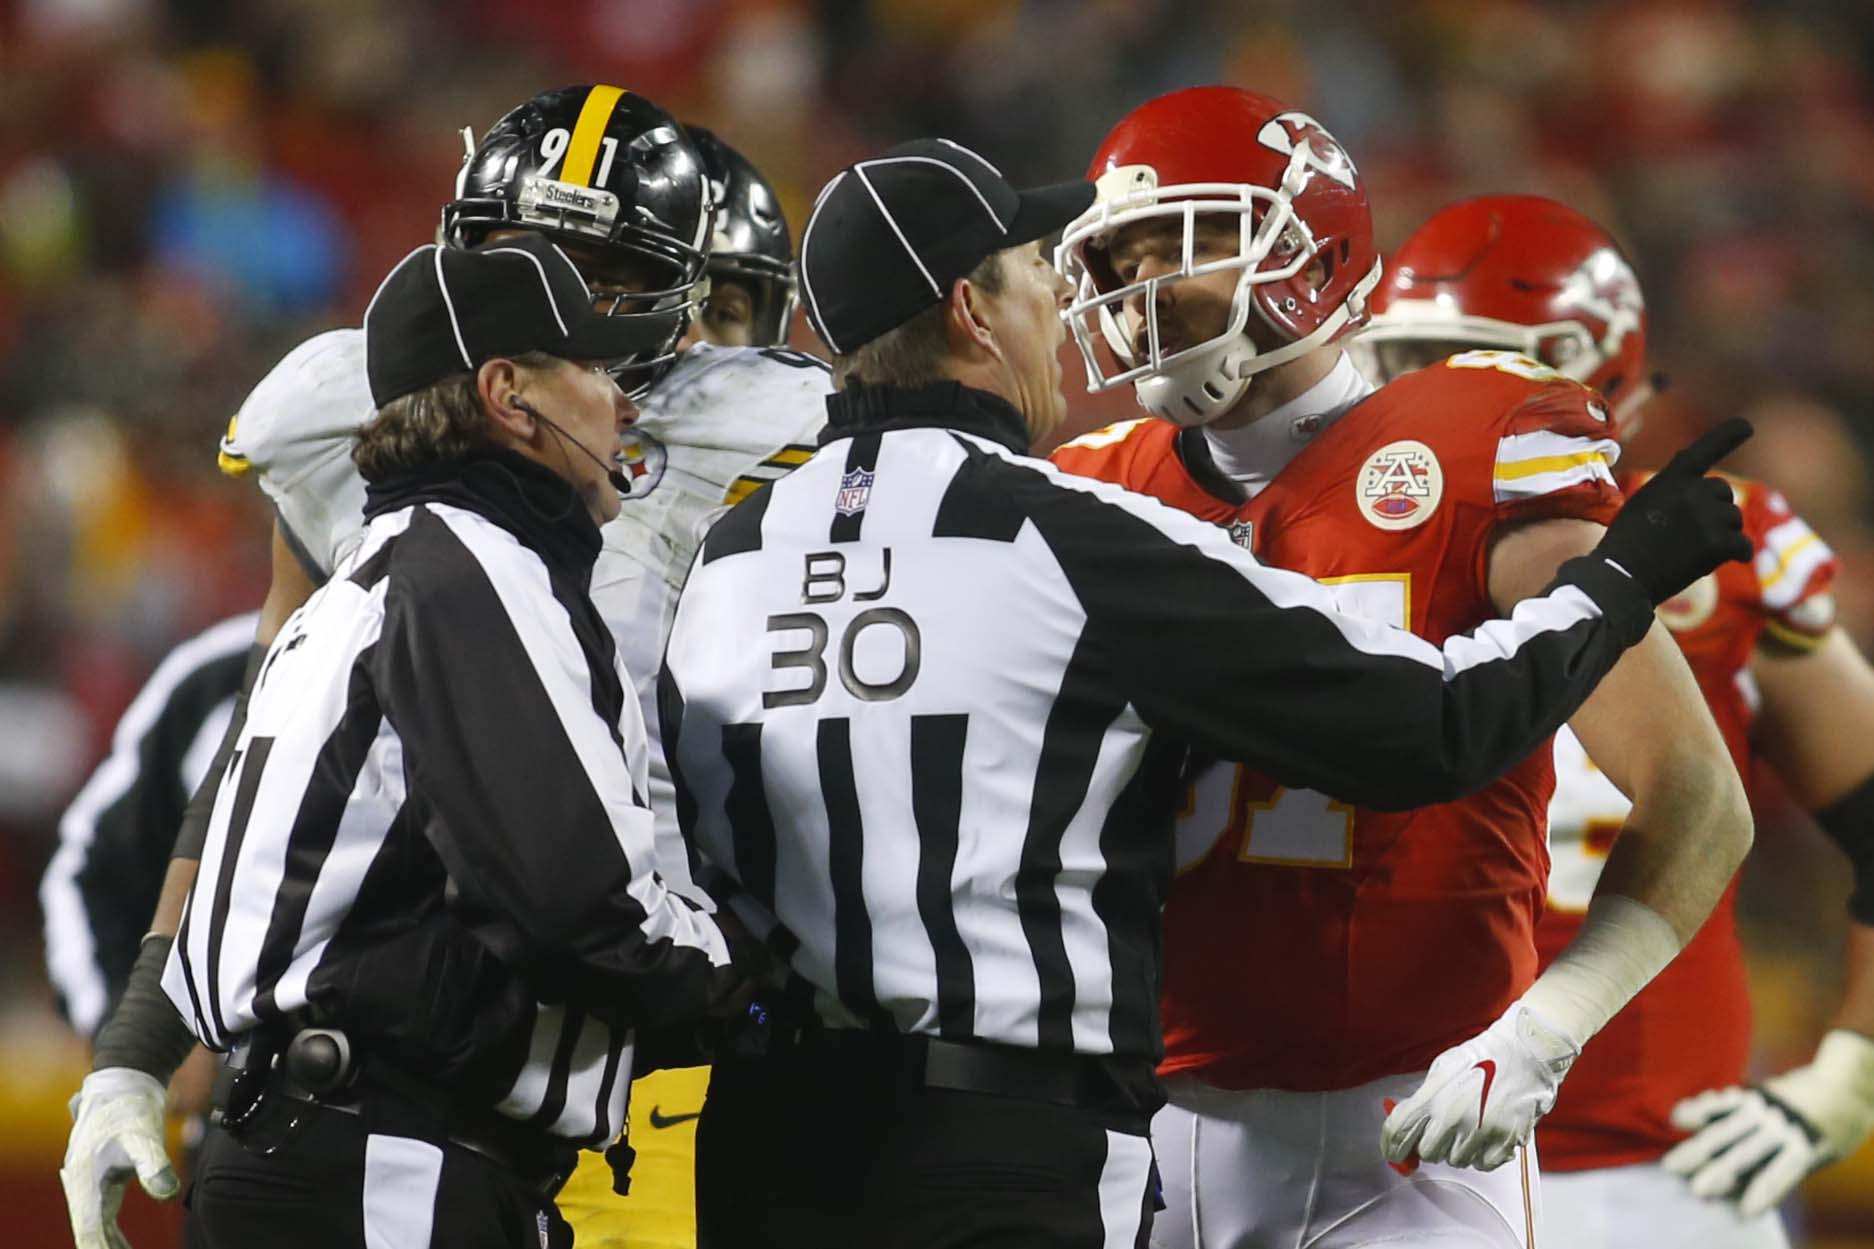 9813145-nfl-afc-divisional-pittsburgh-steelers-at-kansas-city-chiefs